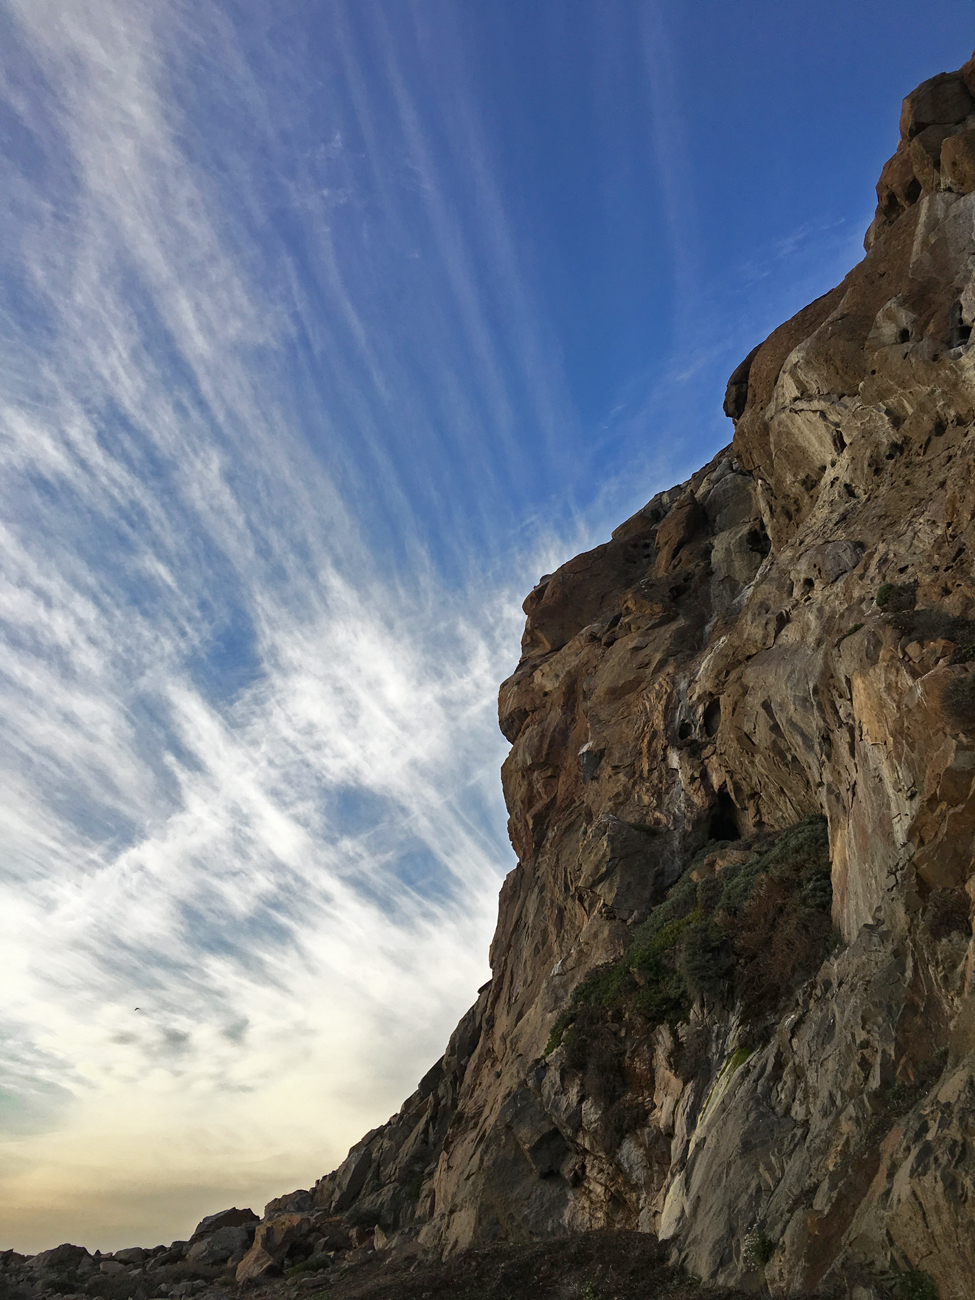 Part of Morro Rock against the sky with wispy clouds reflecting the sun